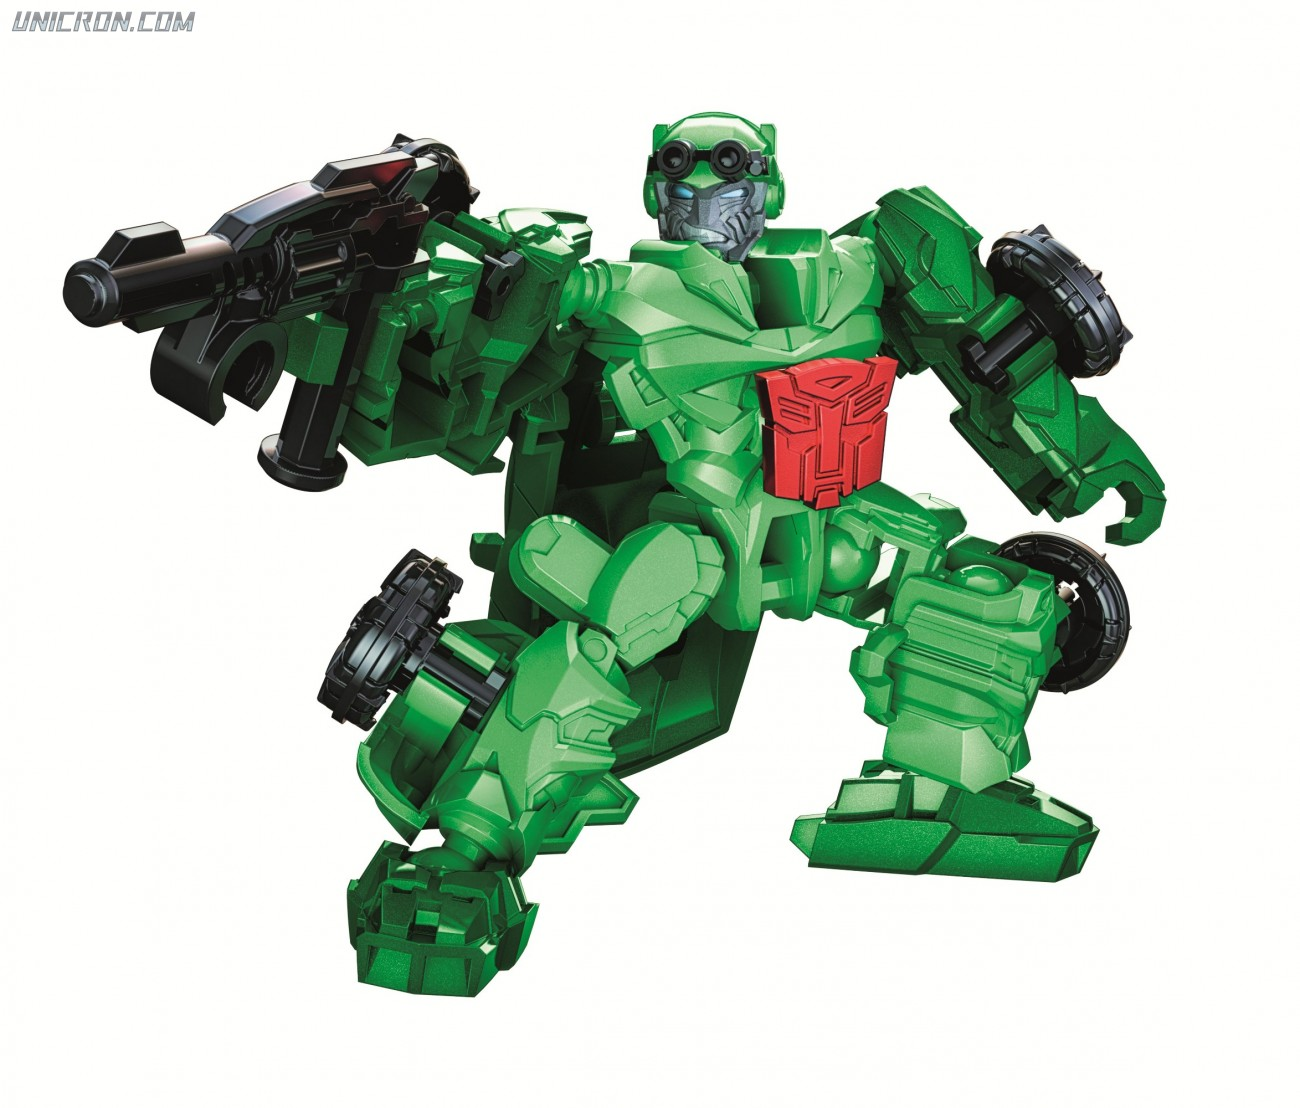 Transformers Construct-Bots Crosshairs - Construct-Bots, Dino Riders  toy